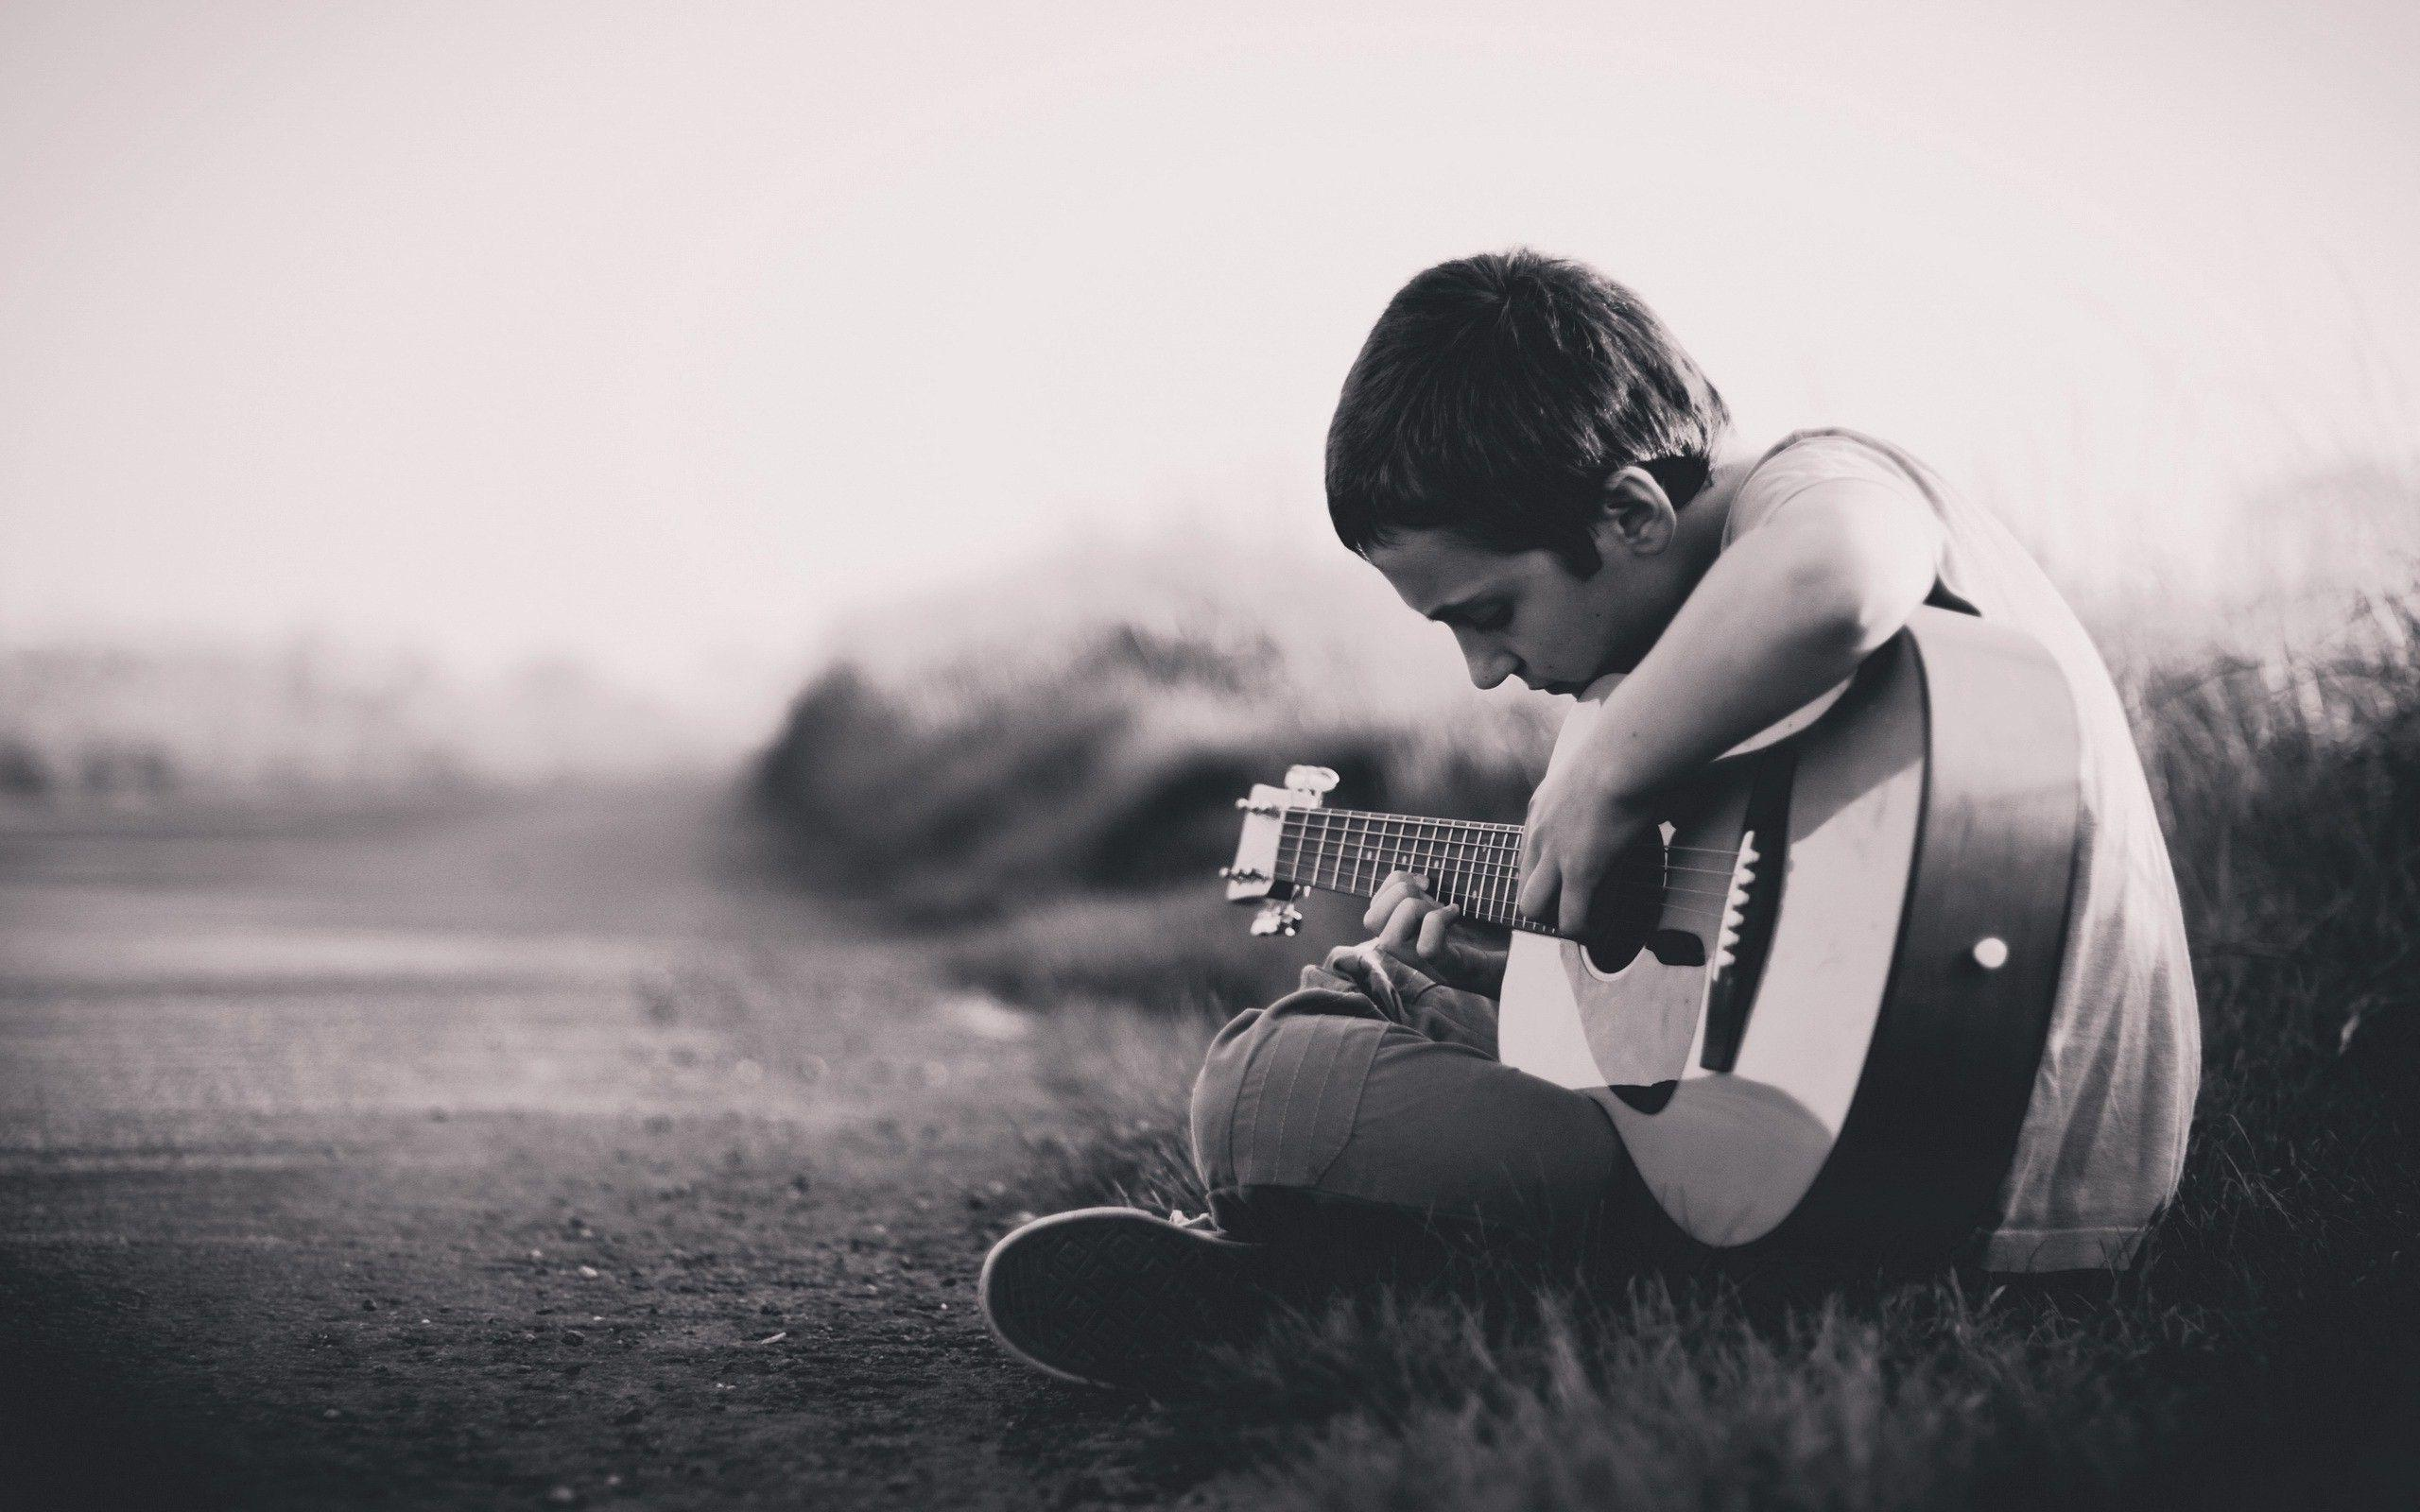 Lonely boy playing guitar hd wallpapers new hd wallpapers